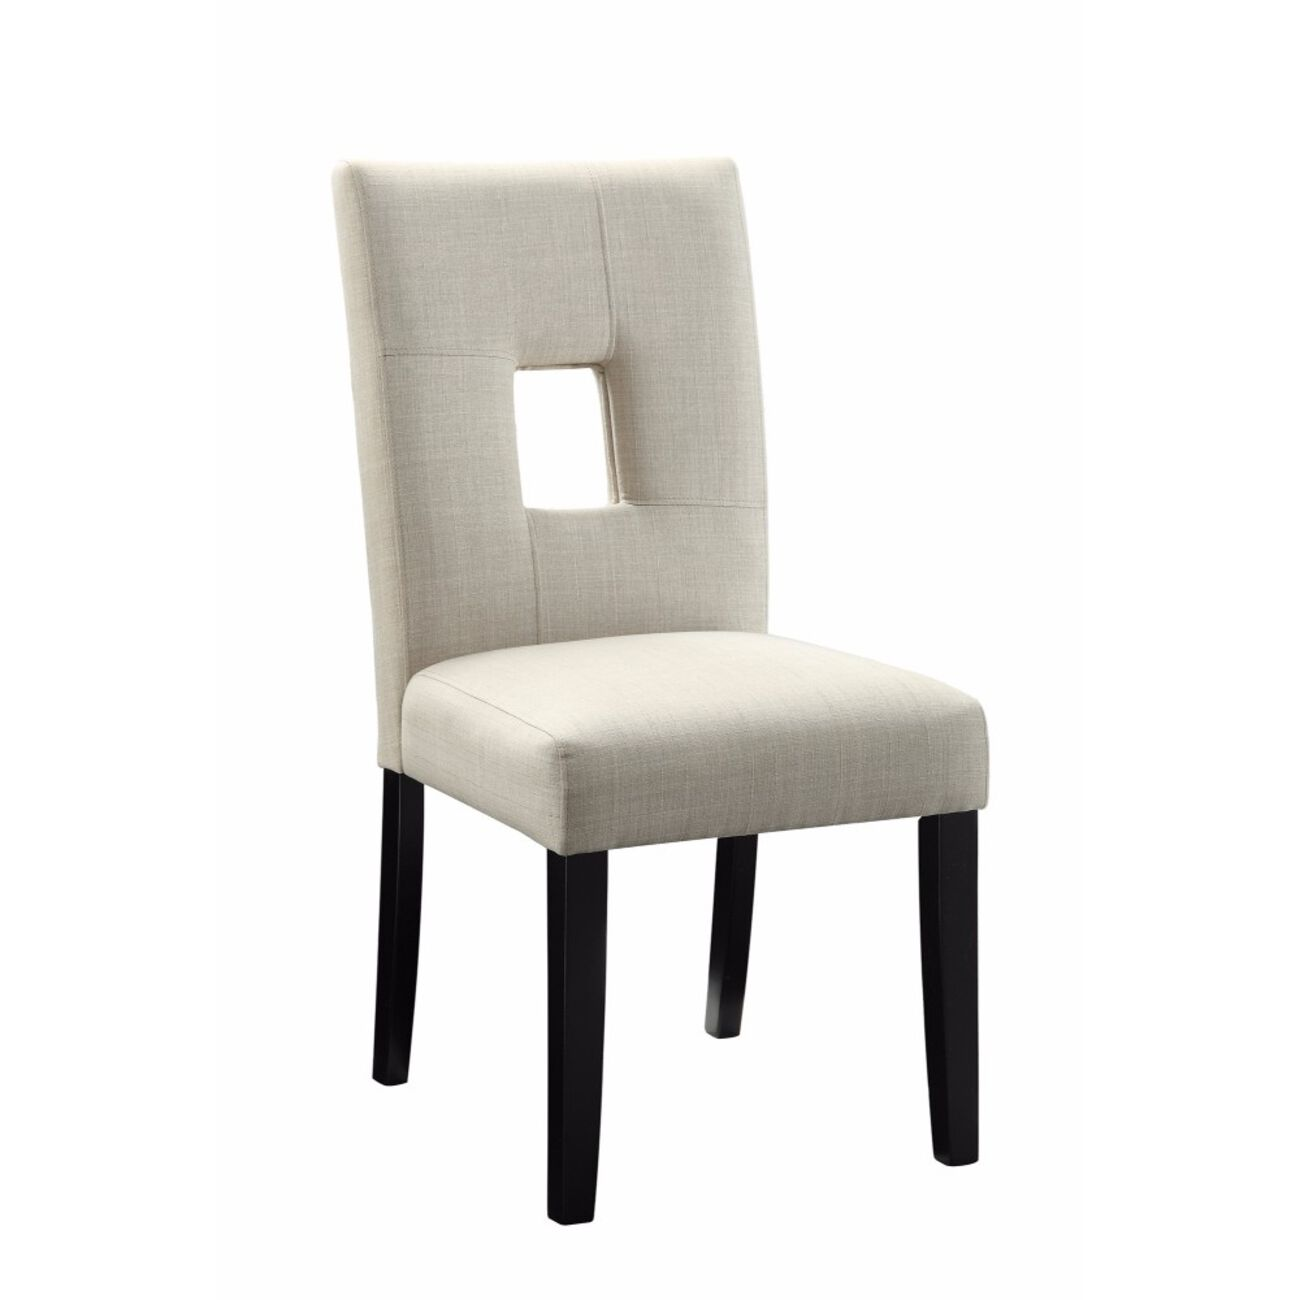 Wooden Dining Side Chair, Beige & Black, Set of 2